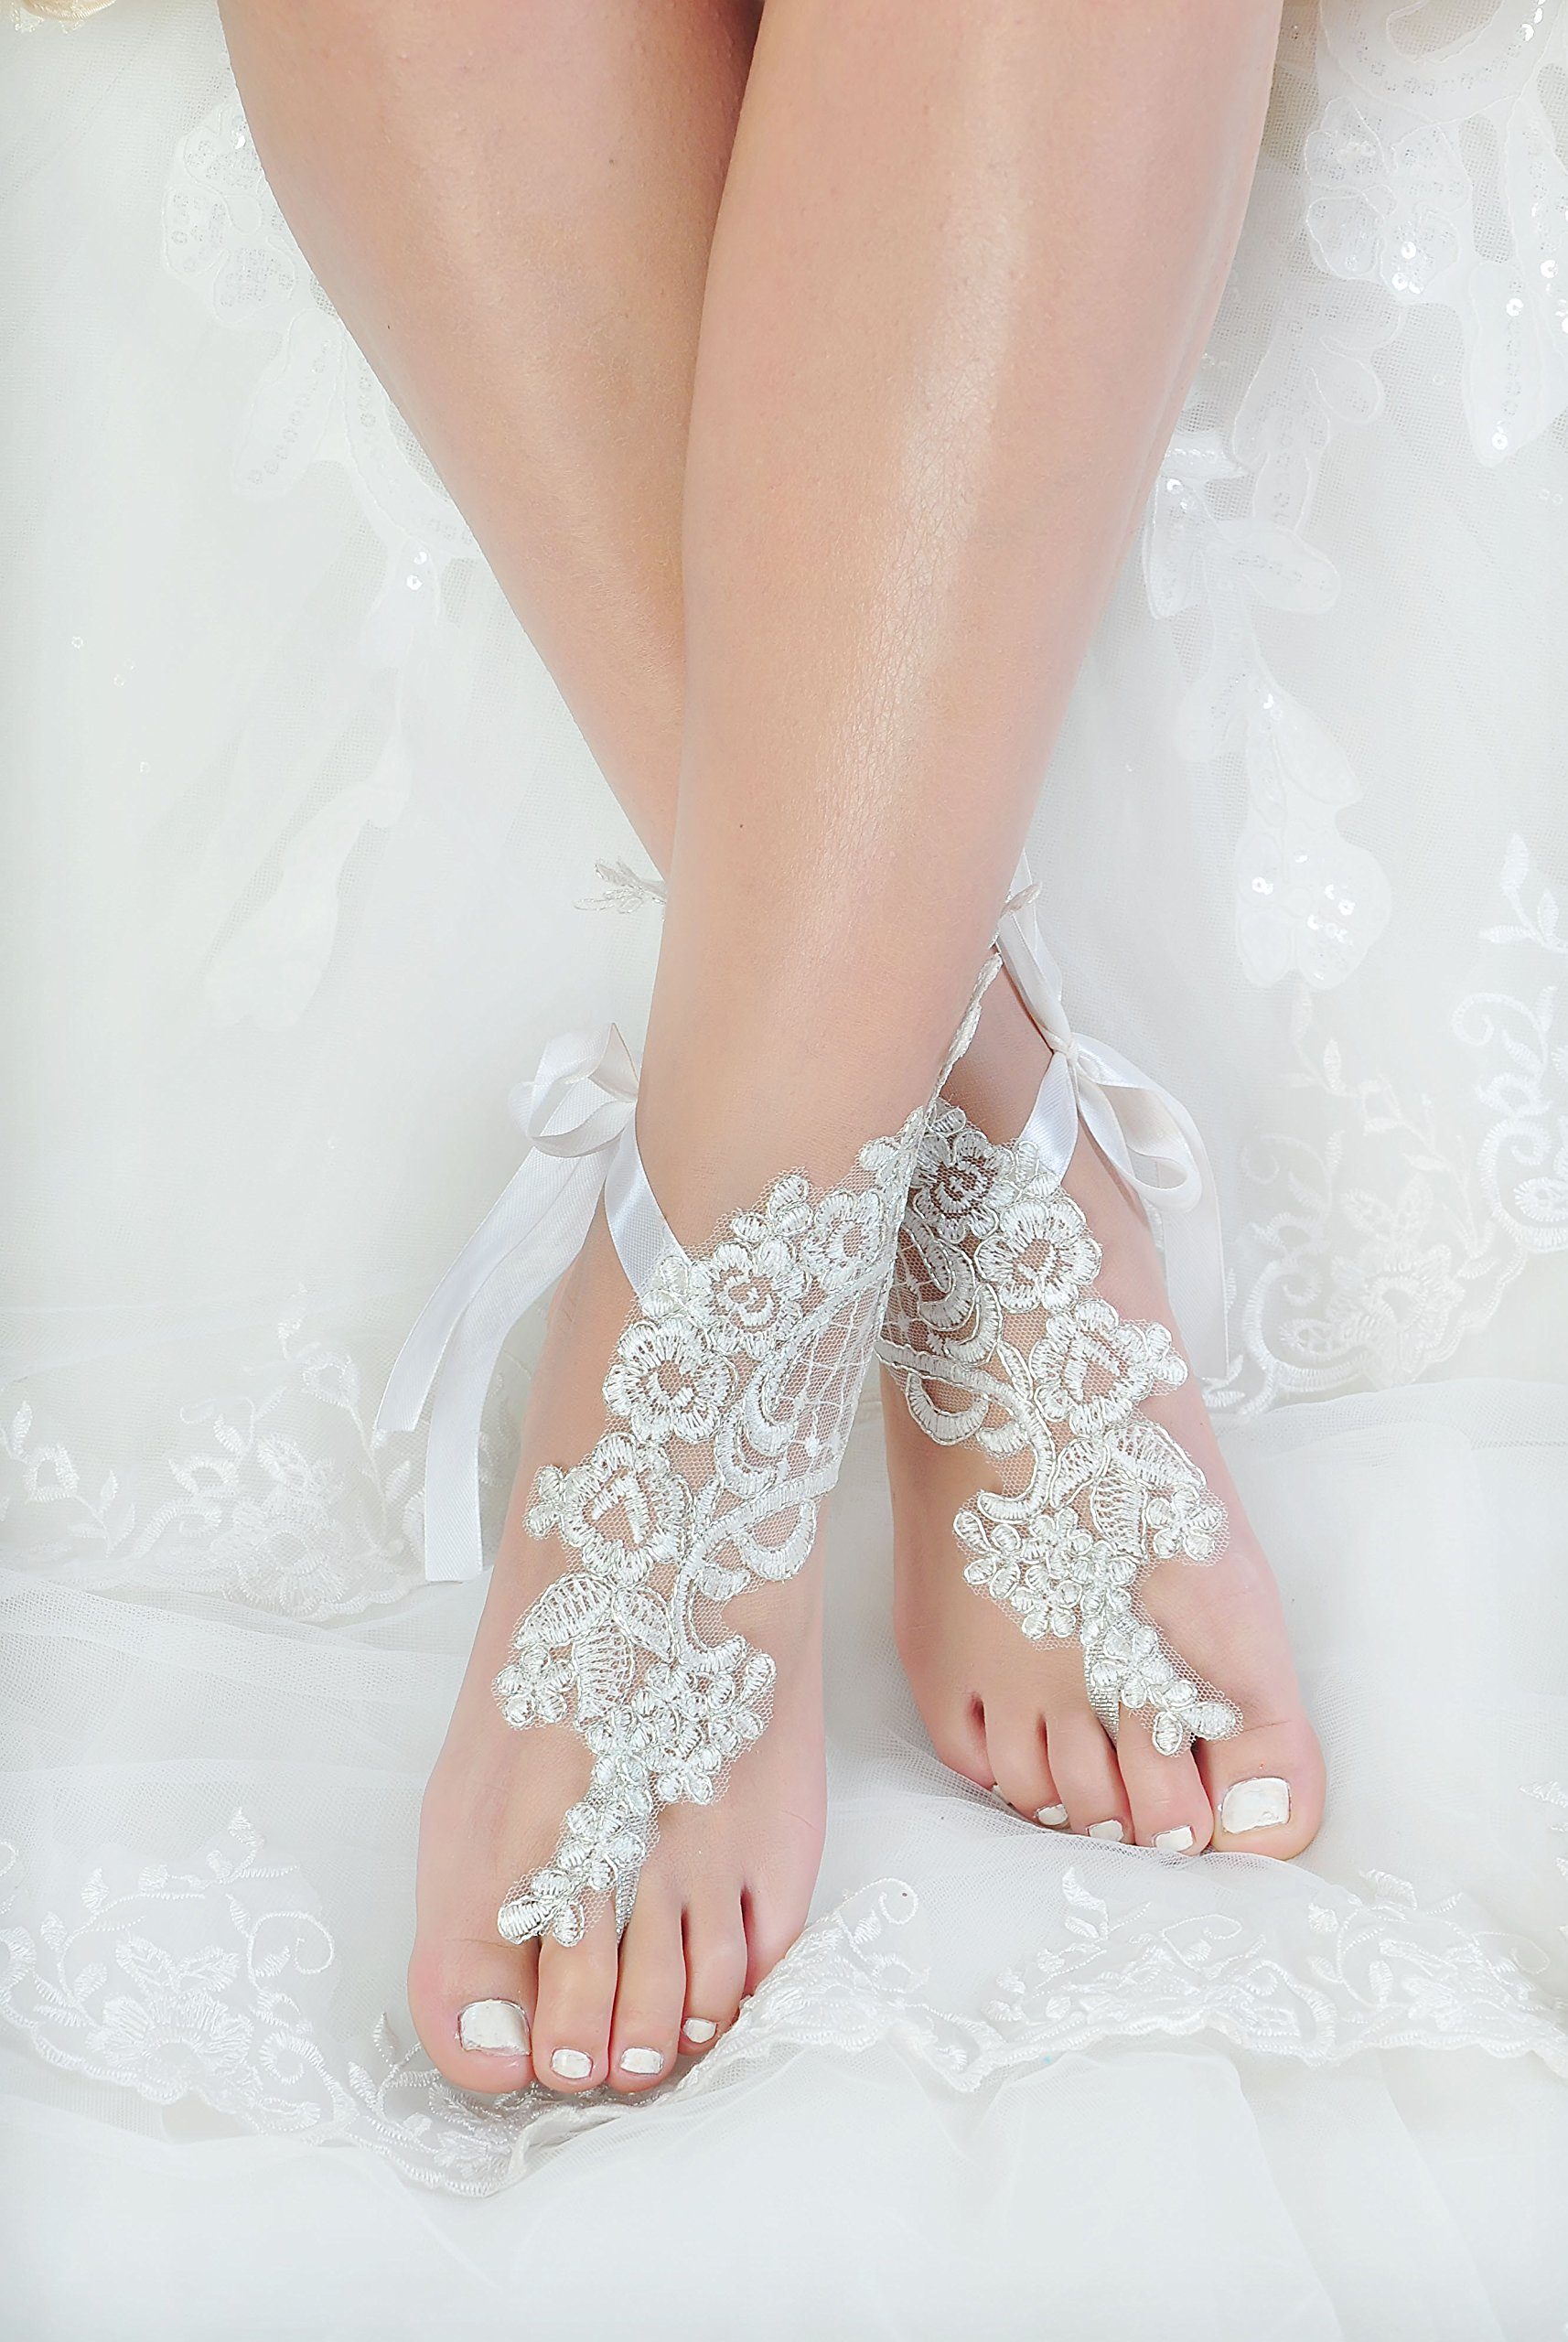 Handmade Lace Anklets,Destination Wedding Barefoot Sandals Prom Party Bangle,Bellydance Accessories-T1 by Fine Lady (Image #2)